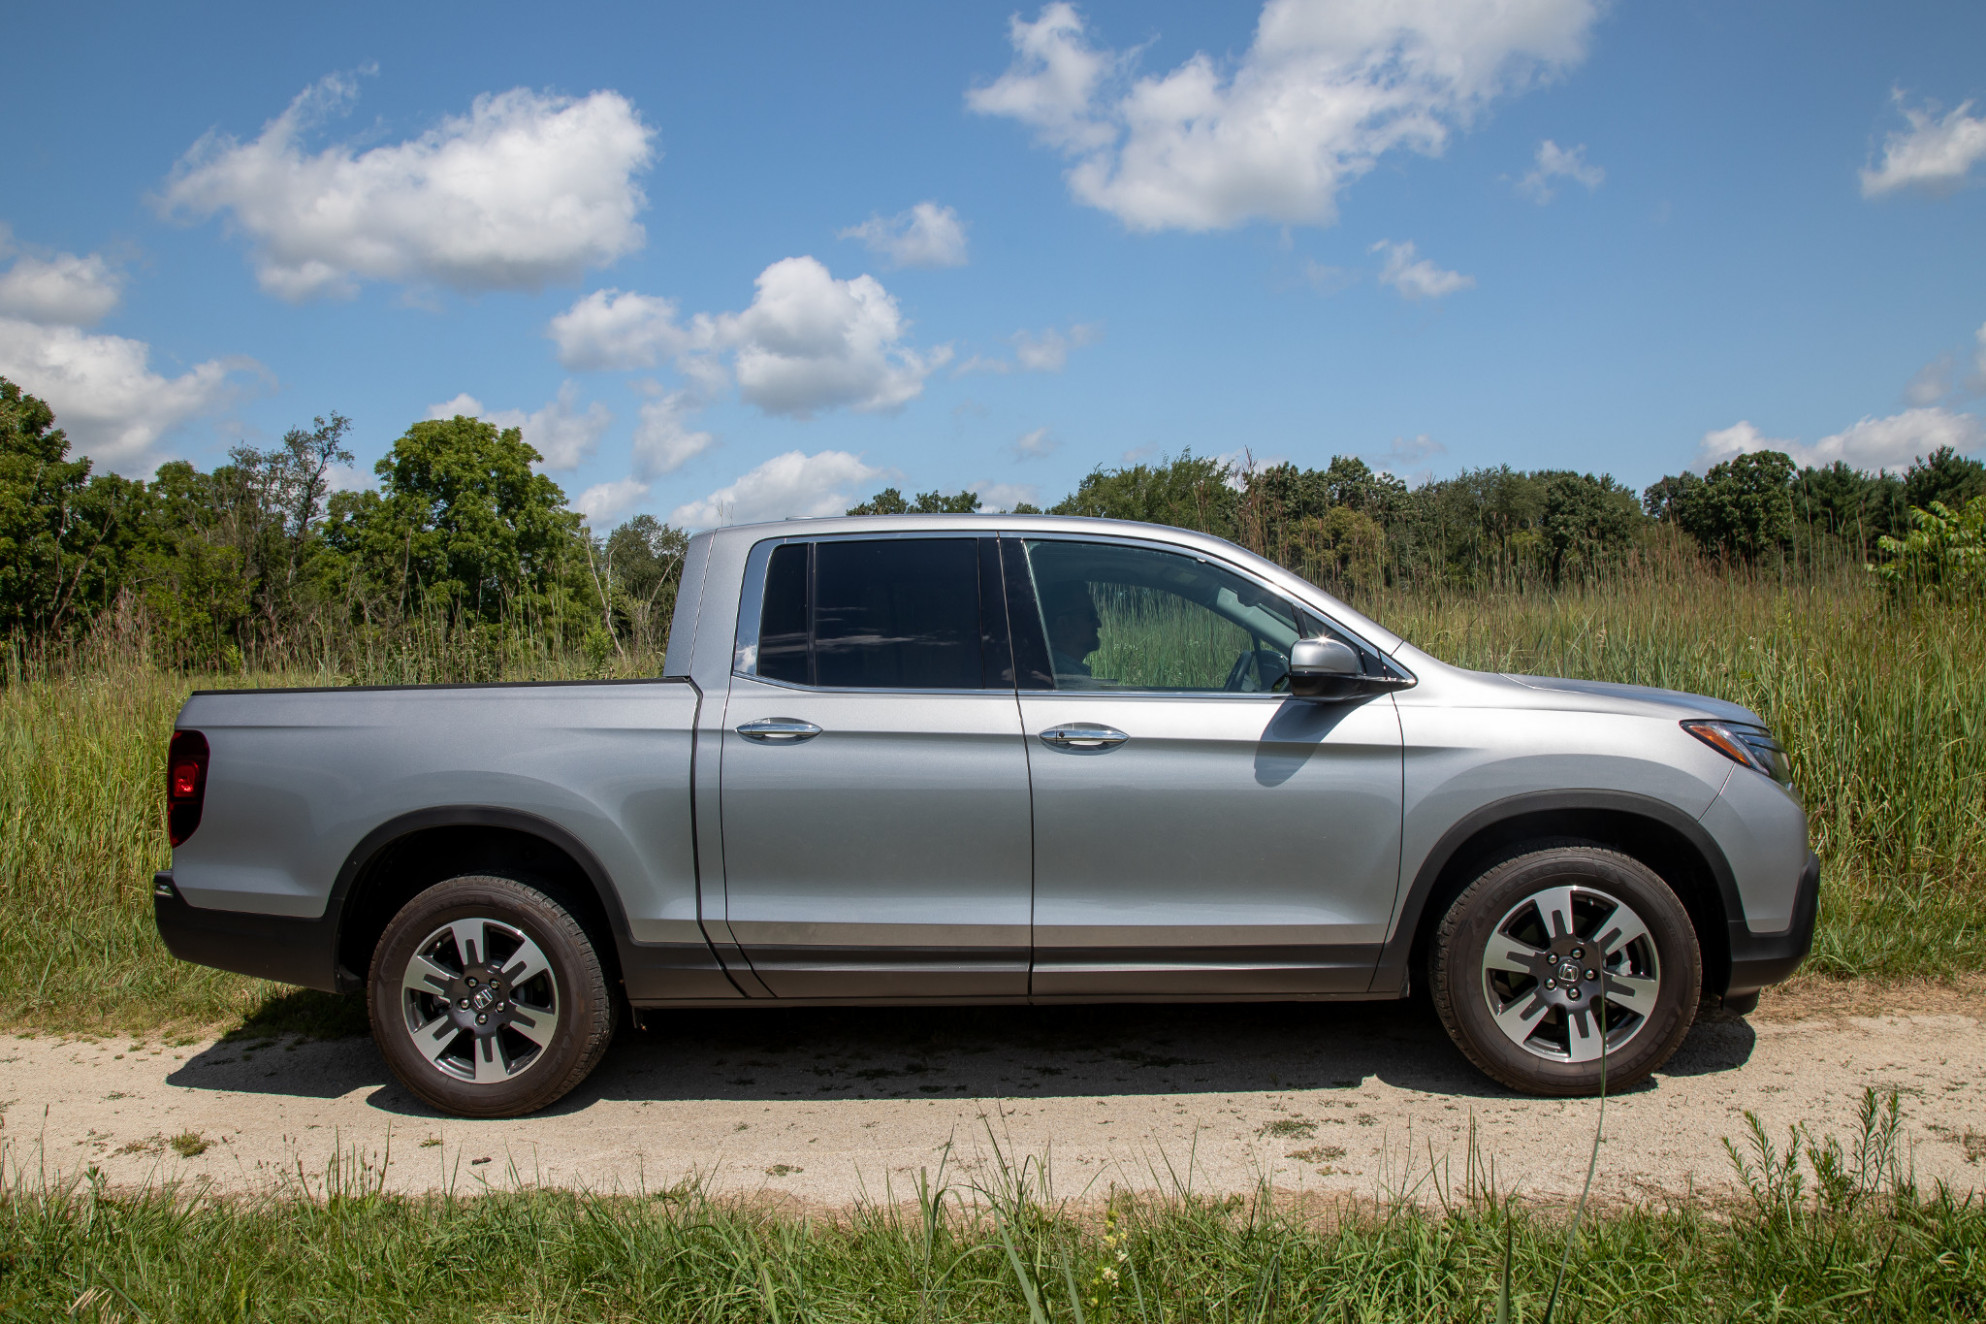 9 Honda Ridgeline: Which Should You Buy, 9 or 9? | News ..